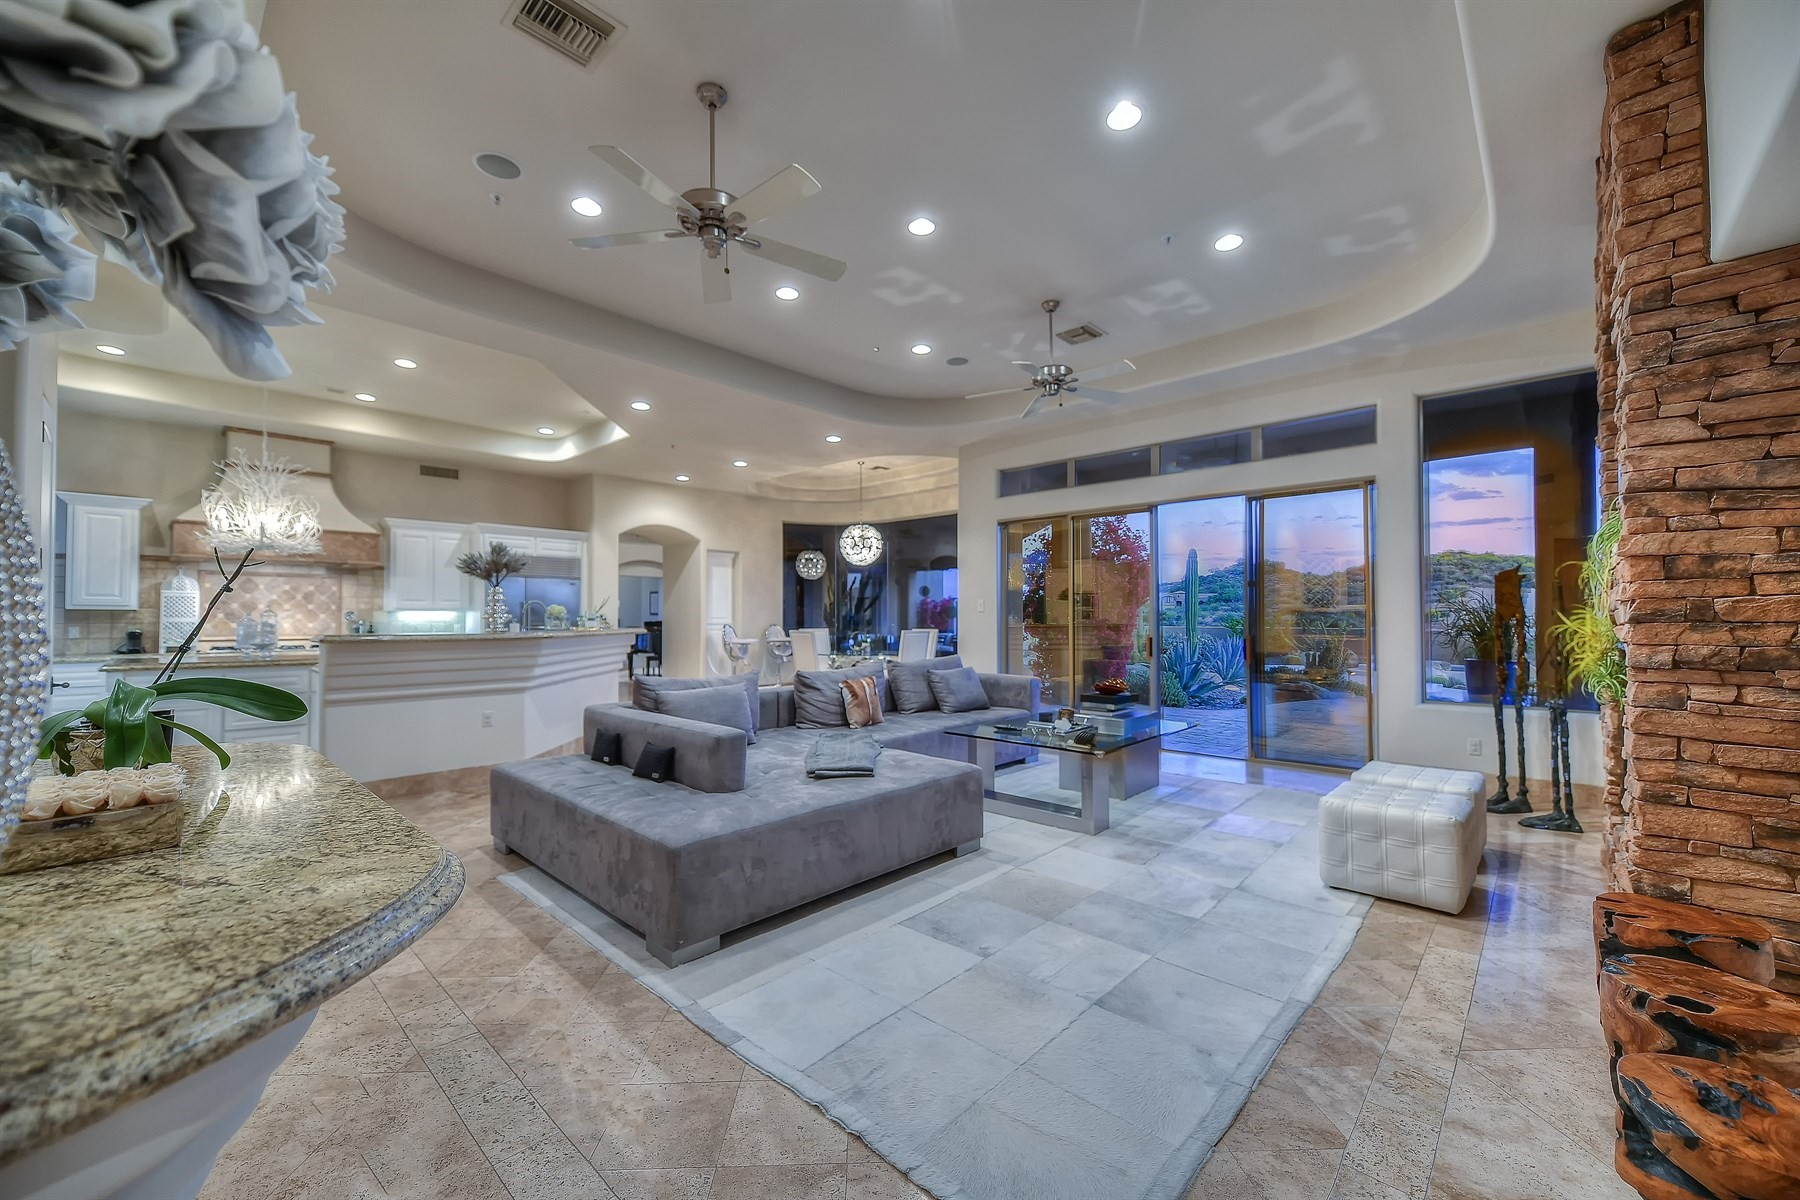 Single Family Home for Sale at Exceptional transitional contemporary home in Talus 29600 N 106th Place Scottsdale, Arizona, 85262 United States